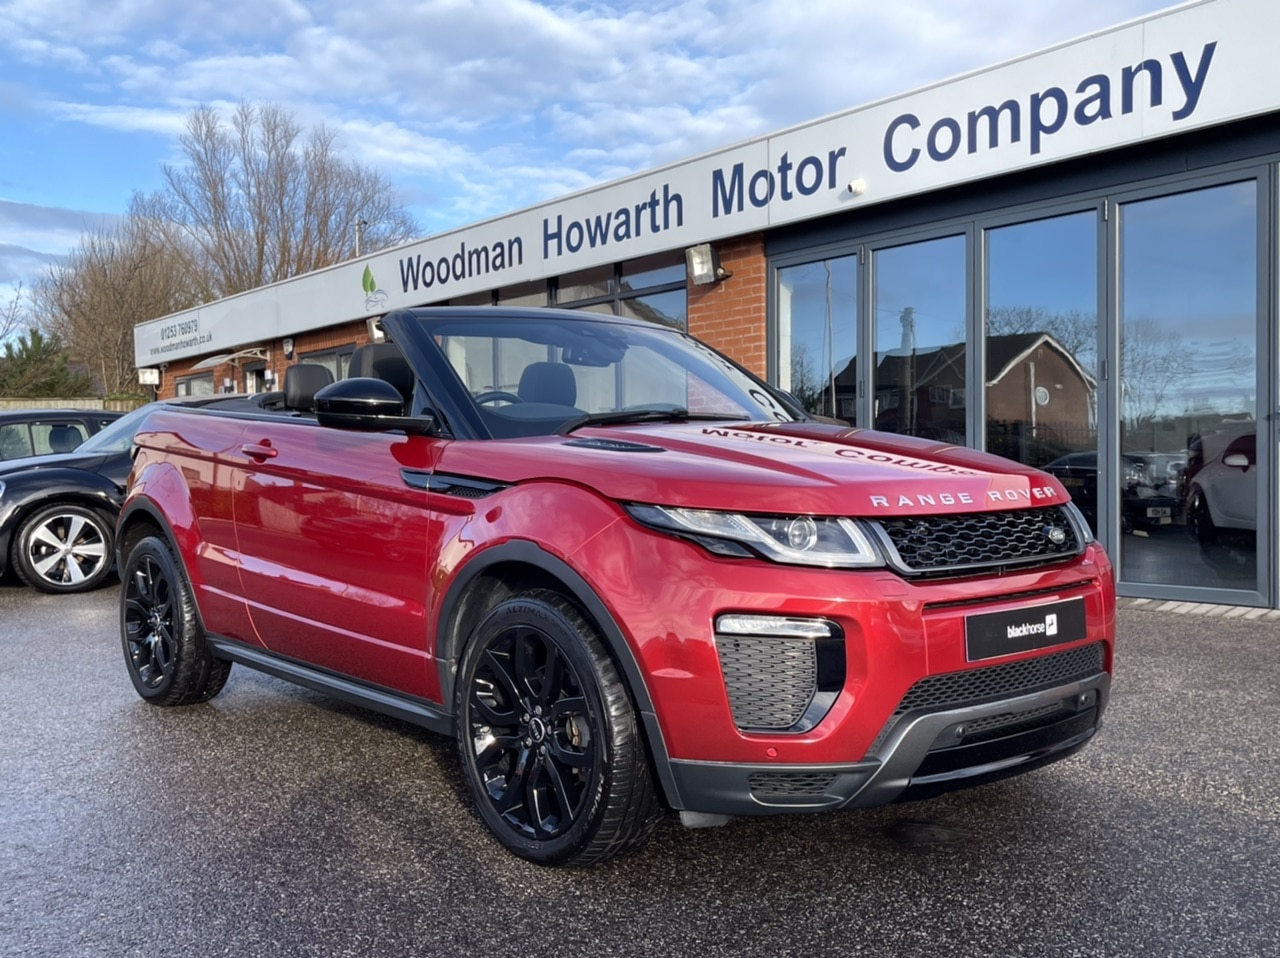 2016 66 LAND ROVER RANGE ROVER EVOQUE 2.0TD4 4WD HSE DYNAMIC CONVERTIBLE AUTO